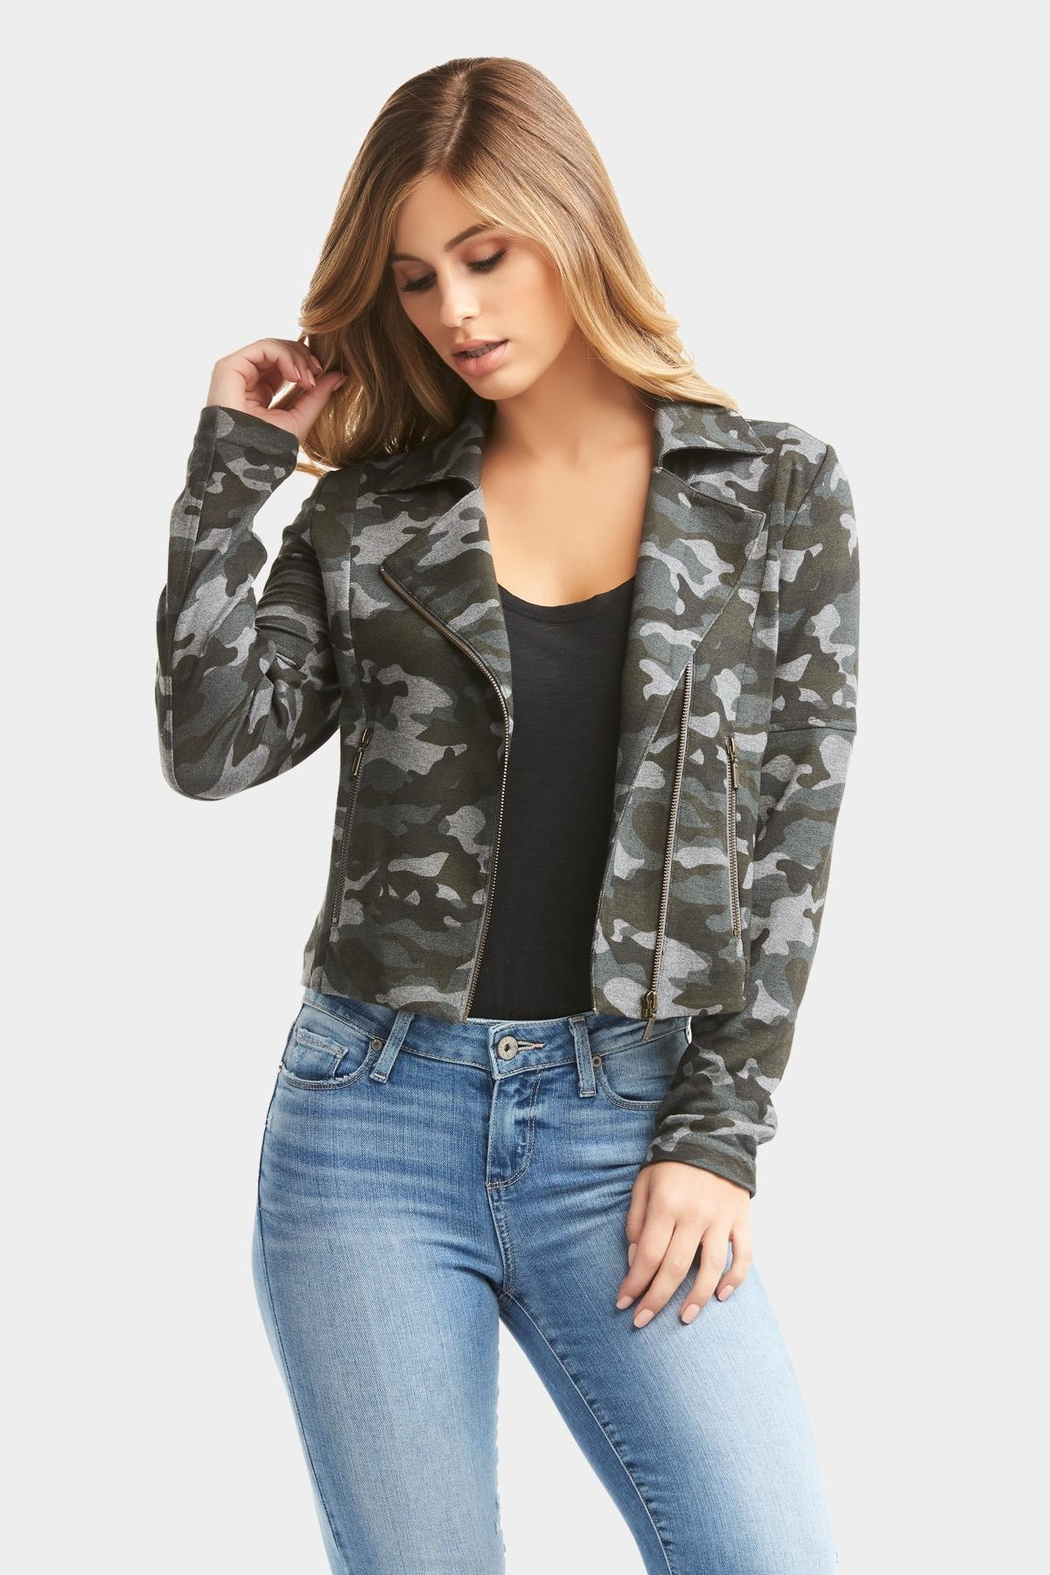 Tart Collections Gracia Camo Jacket - Front Full Image